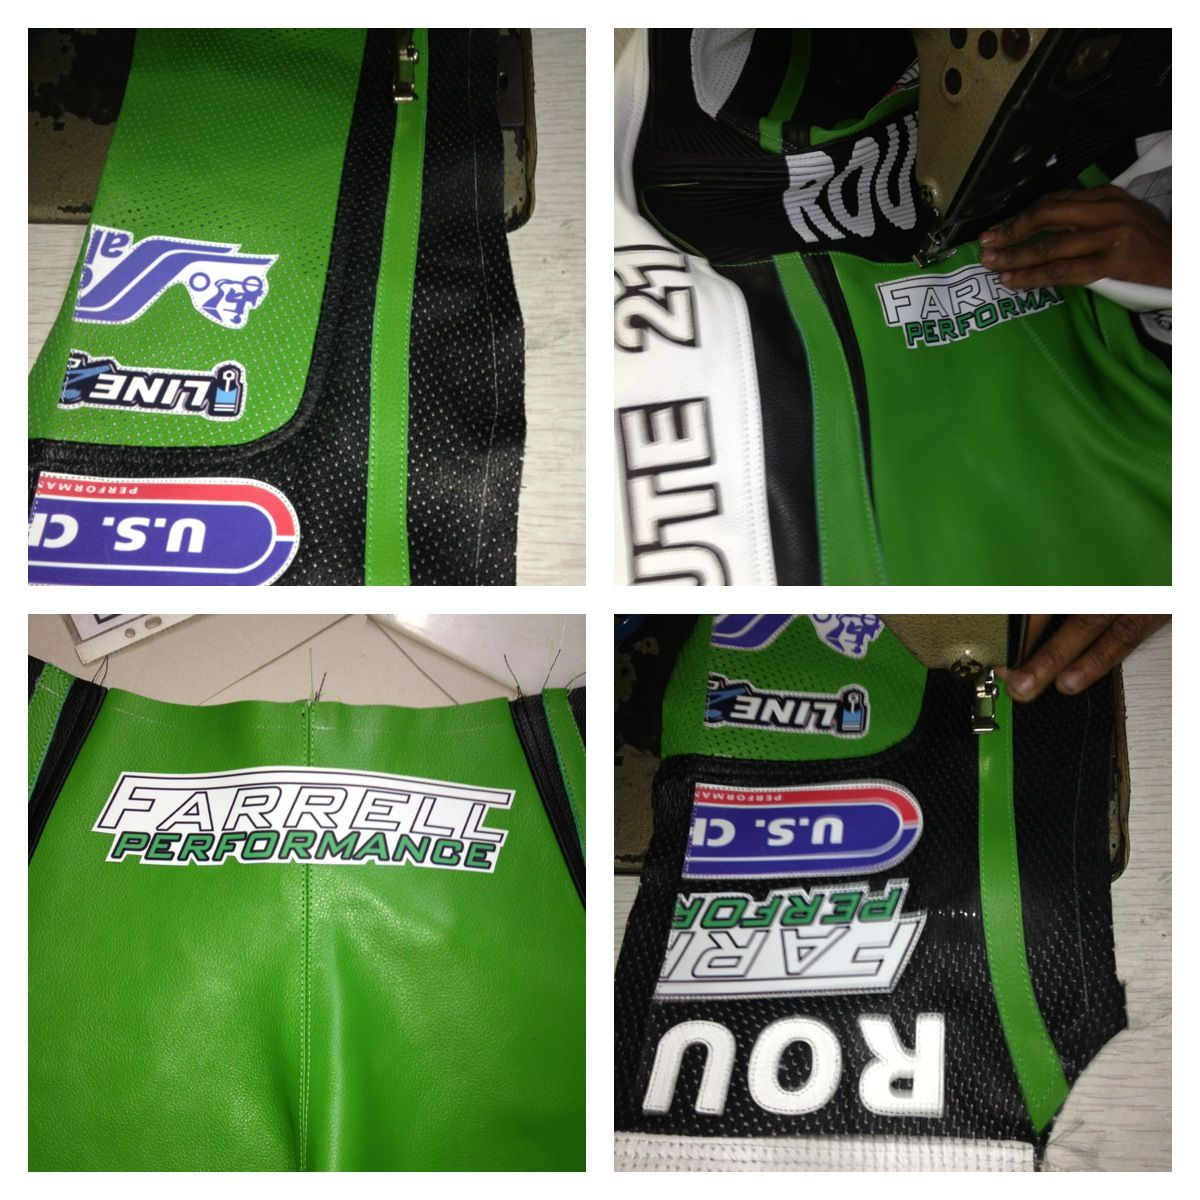 ece6a95e45c Motorcycle race suit manufactured by ROUTE 21 Racing Apparel ...